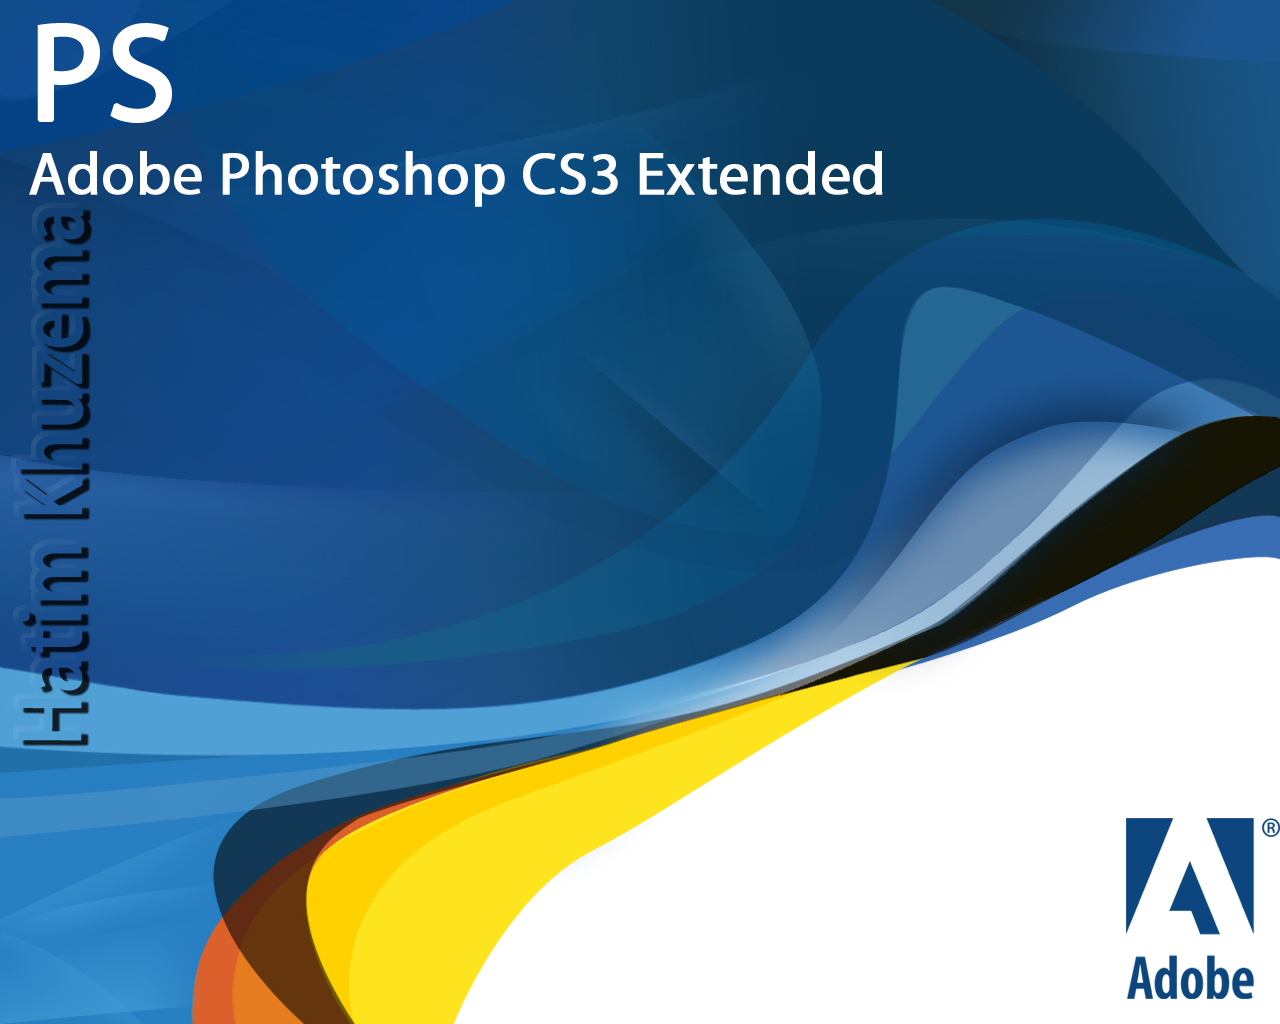 Adobe photoshop cs3 extended working crack full version